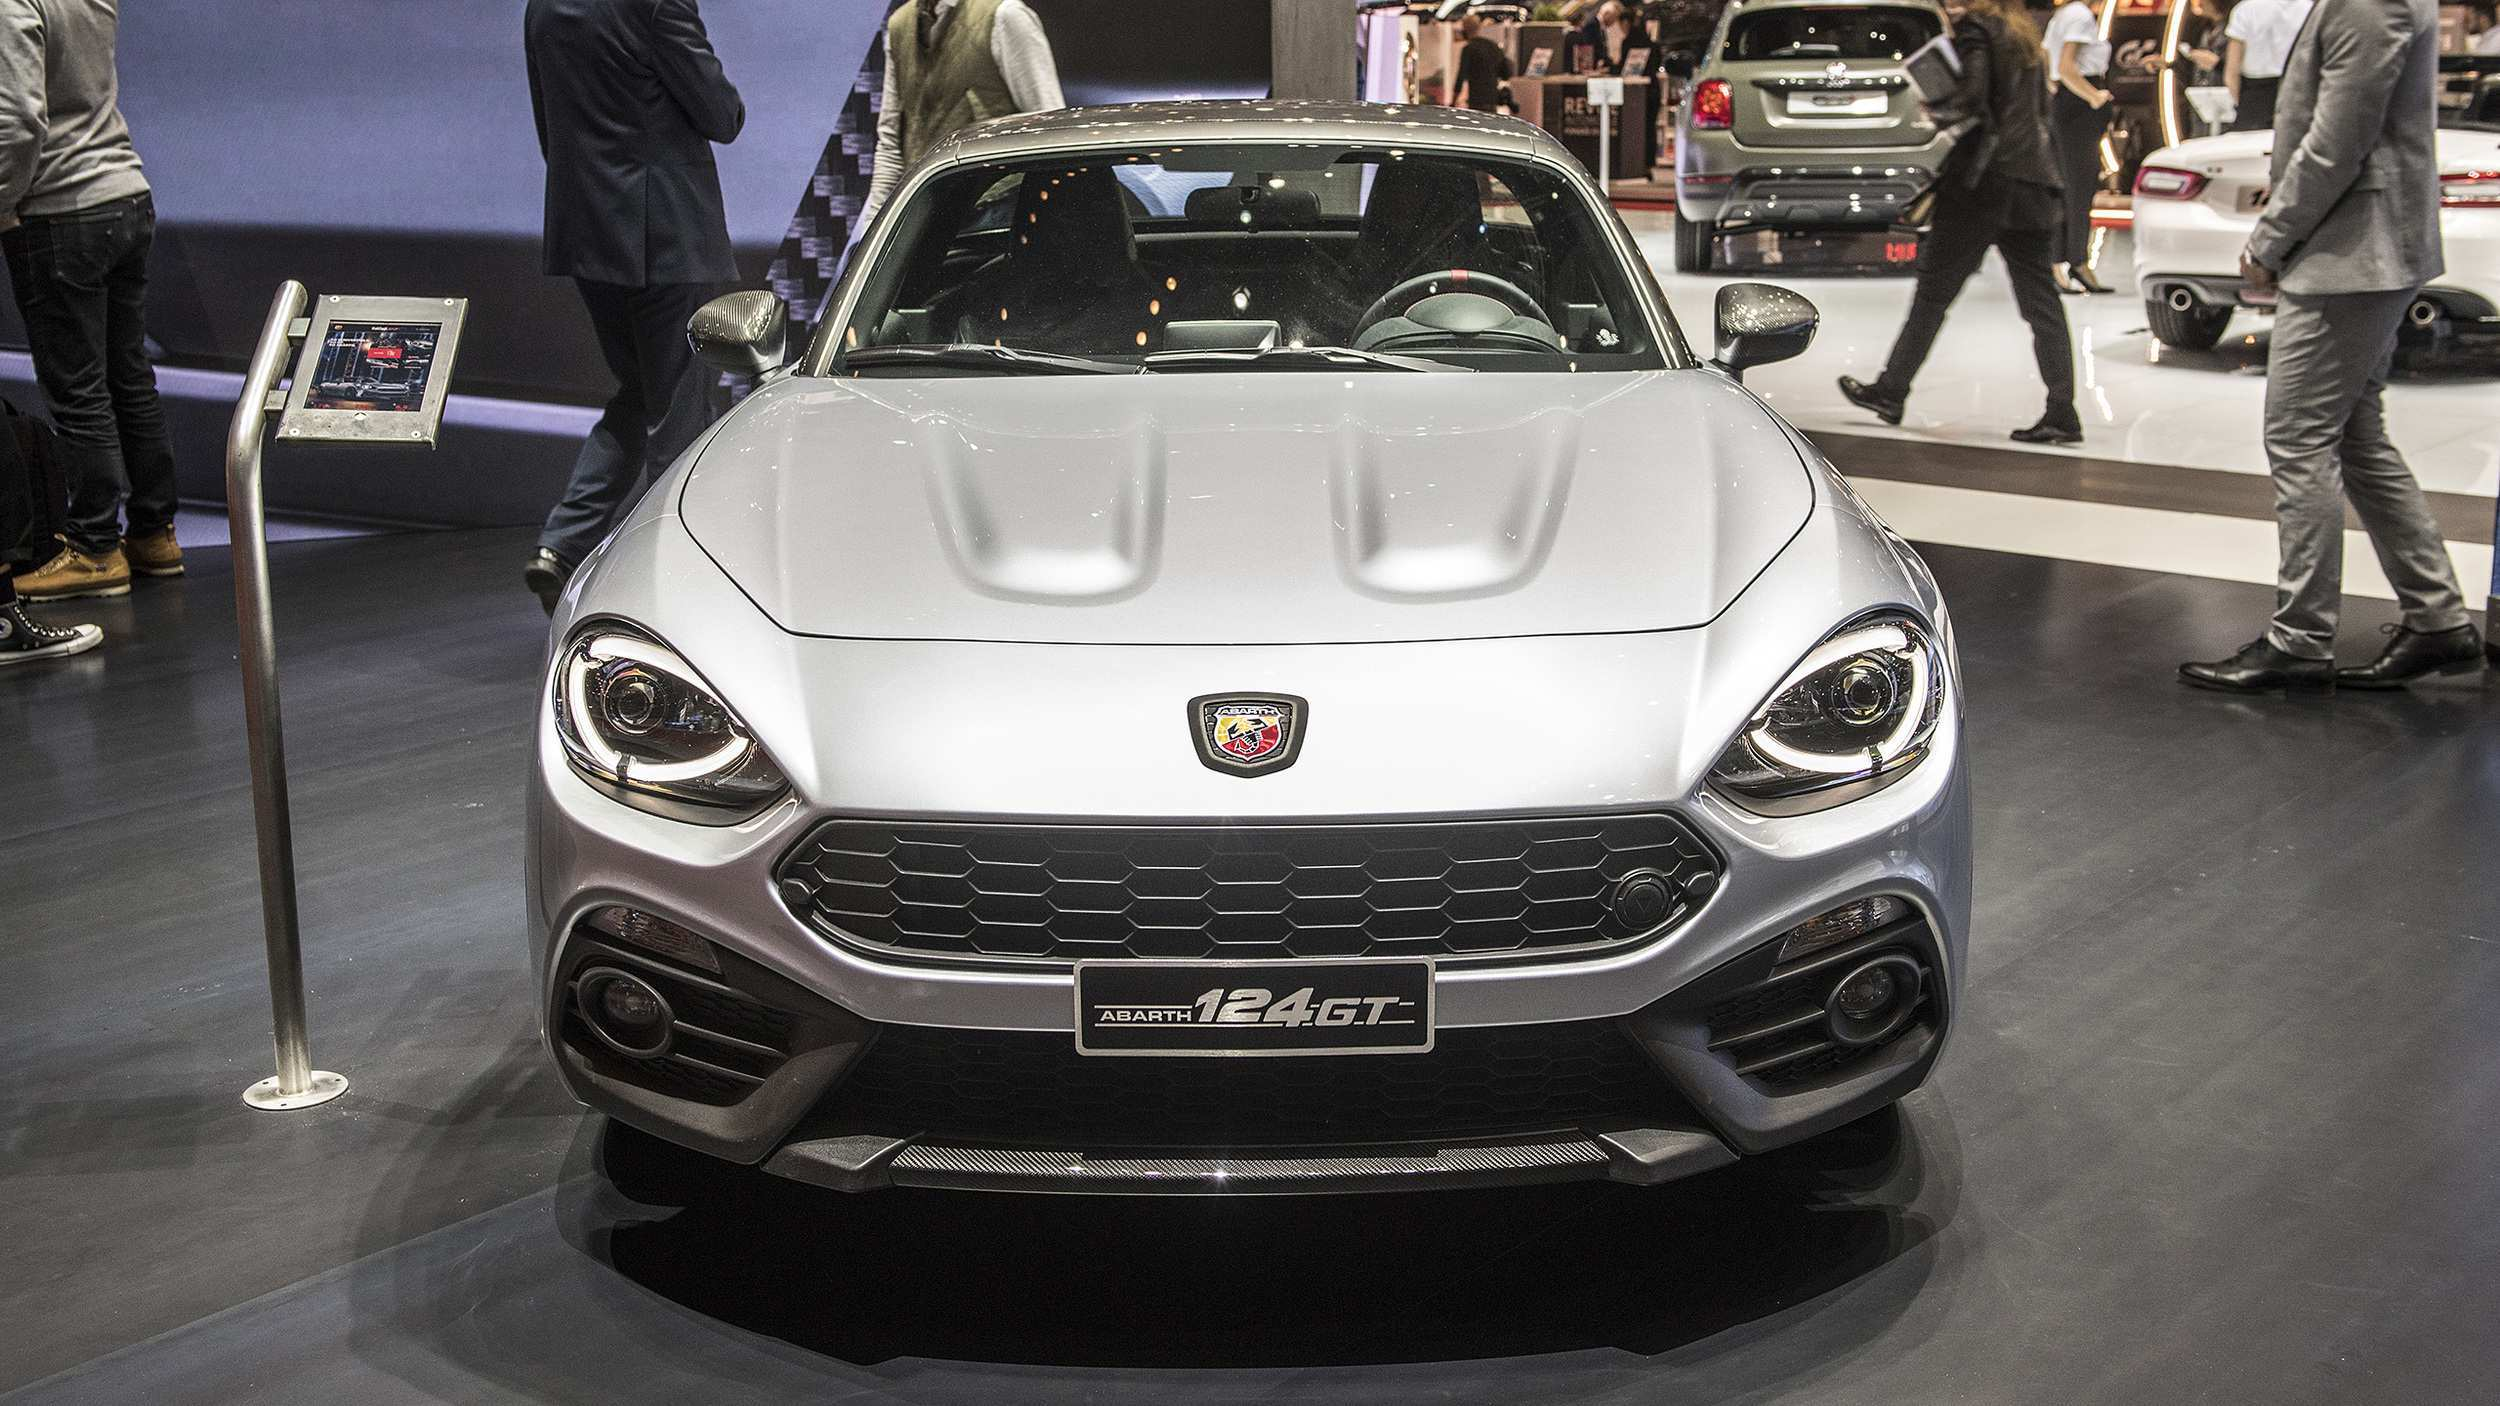 40 Best Review 2019 Fiat 124 Gt Spesification with 2019 Fiat 124 Gt